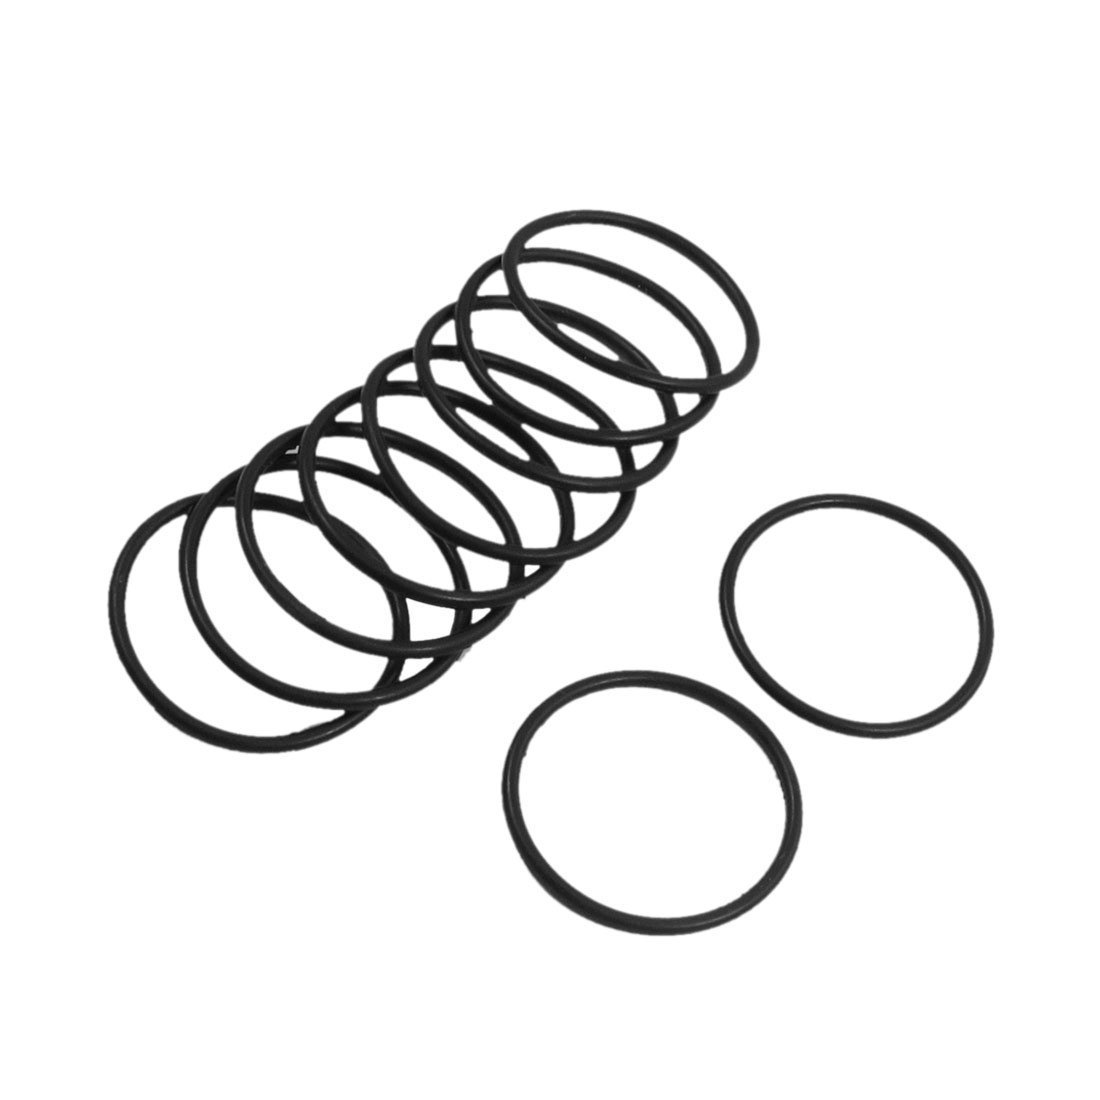 SODIAL(R) 10 pieces 30 mm x 2 mm Rubber Sealing Discs Oil Filter O Rings black